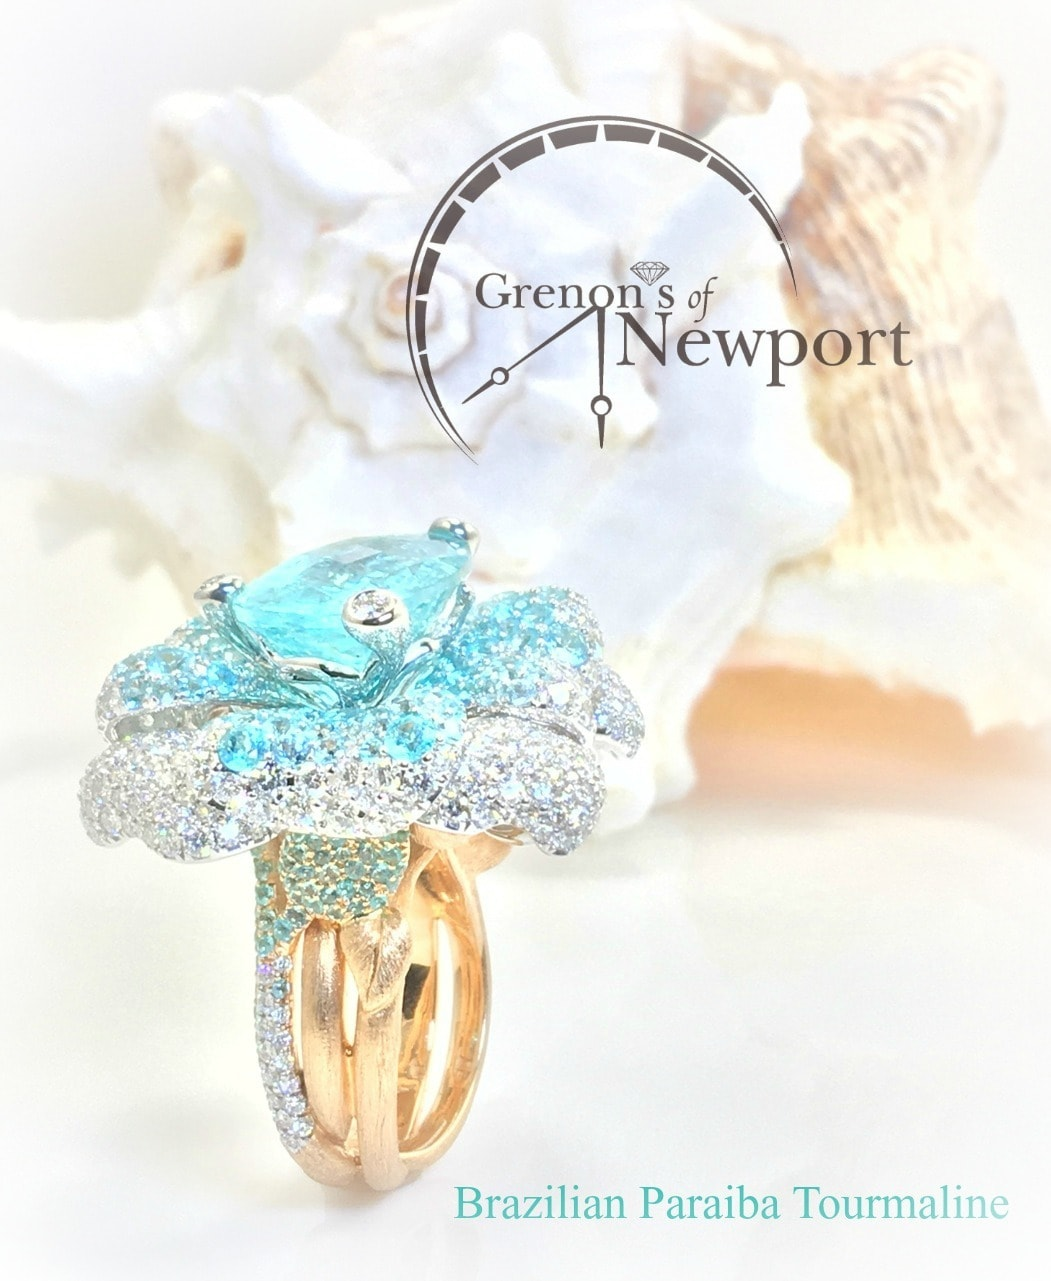 Grenon's_Of_Newport_Custom_design_Brazilian_Paraiba_Tourmaline-min